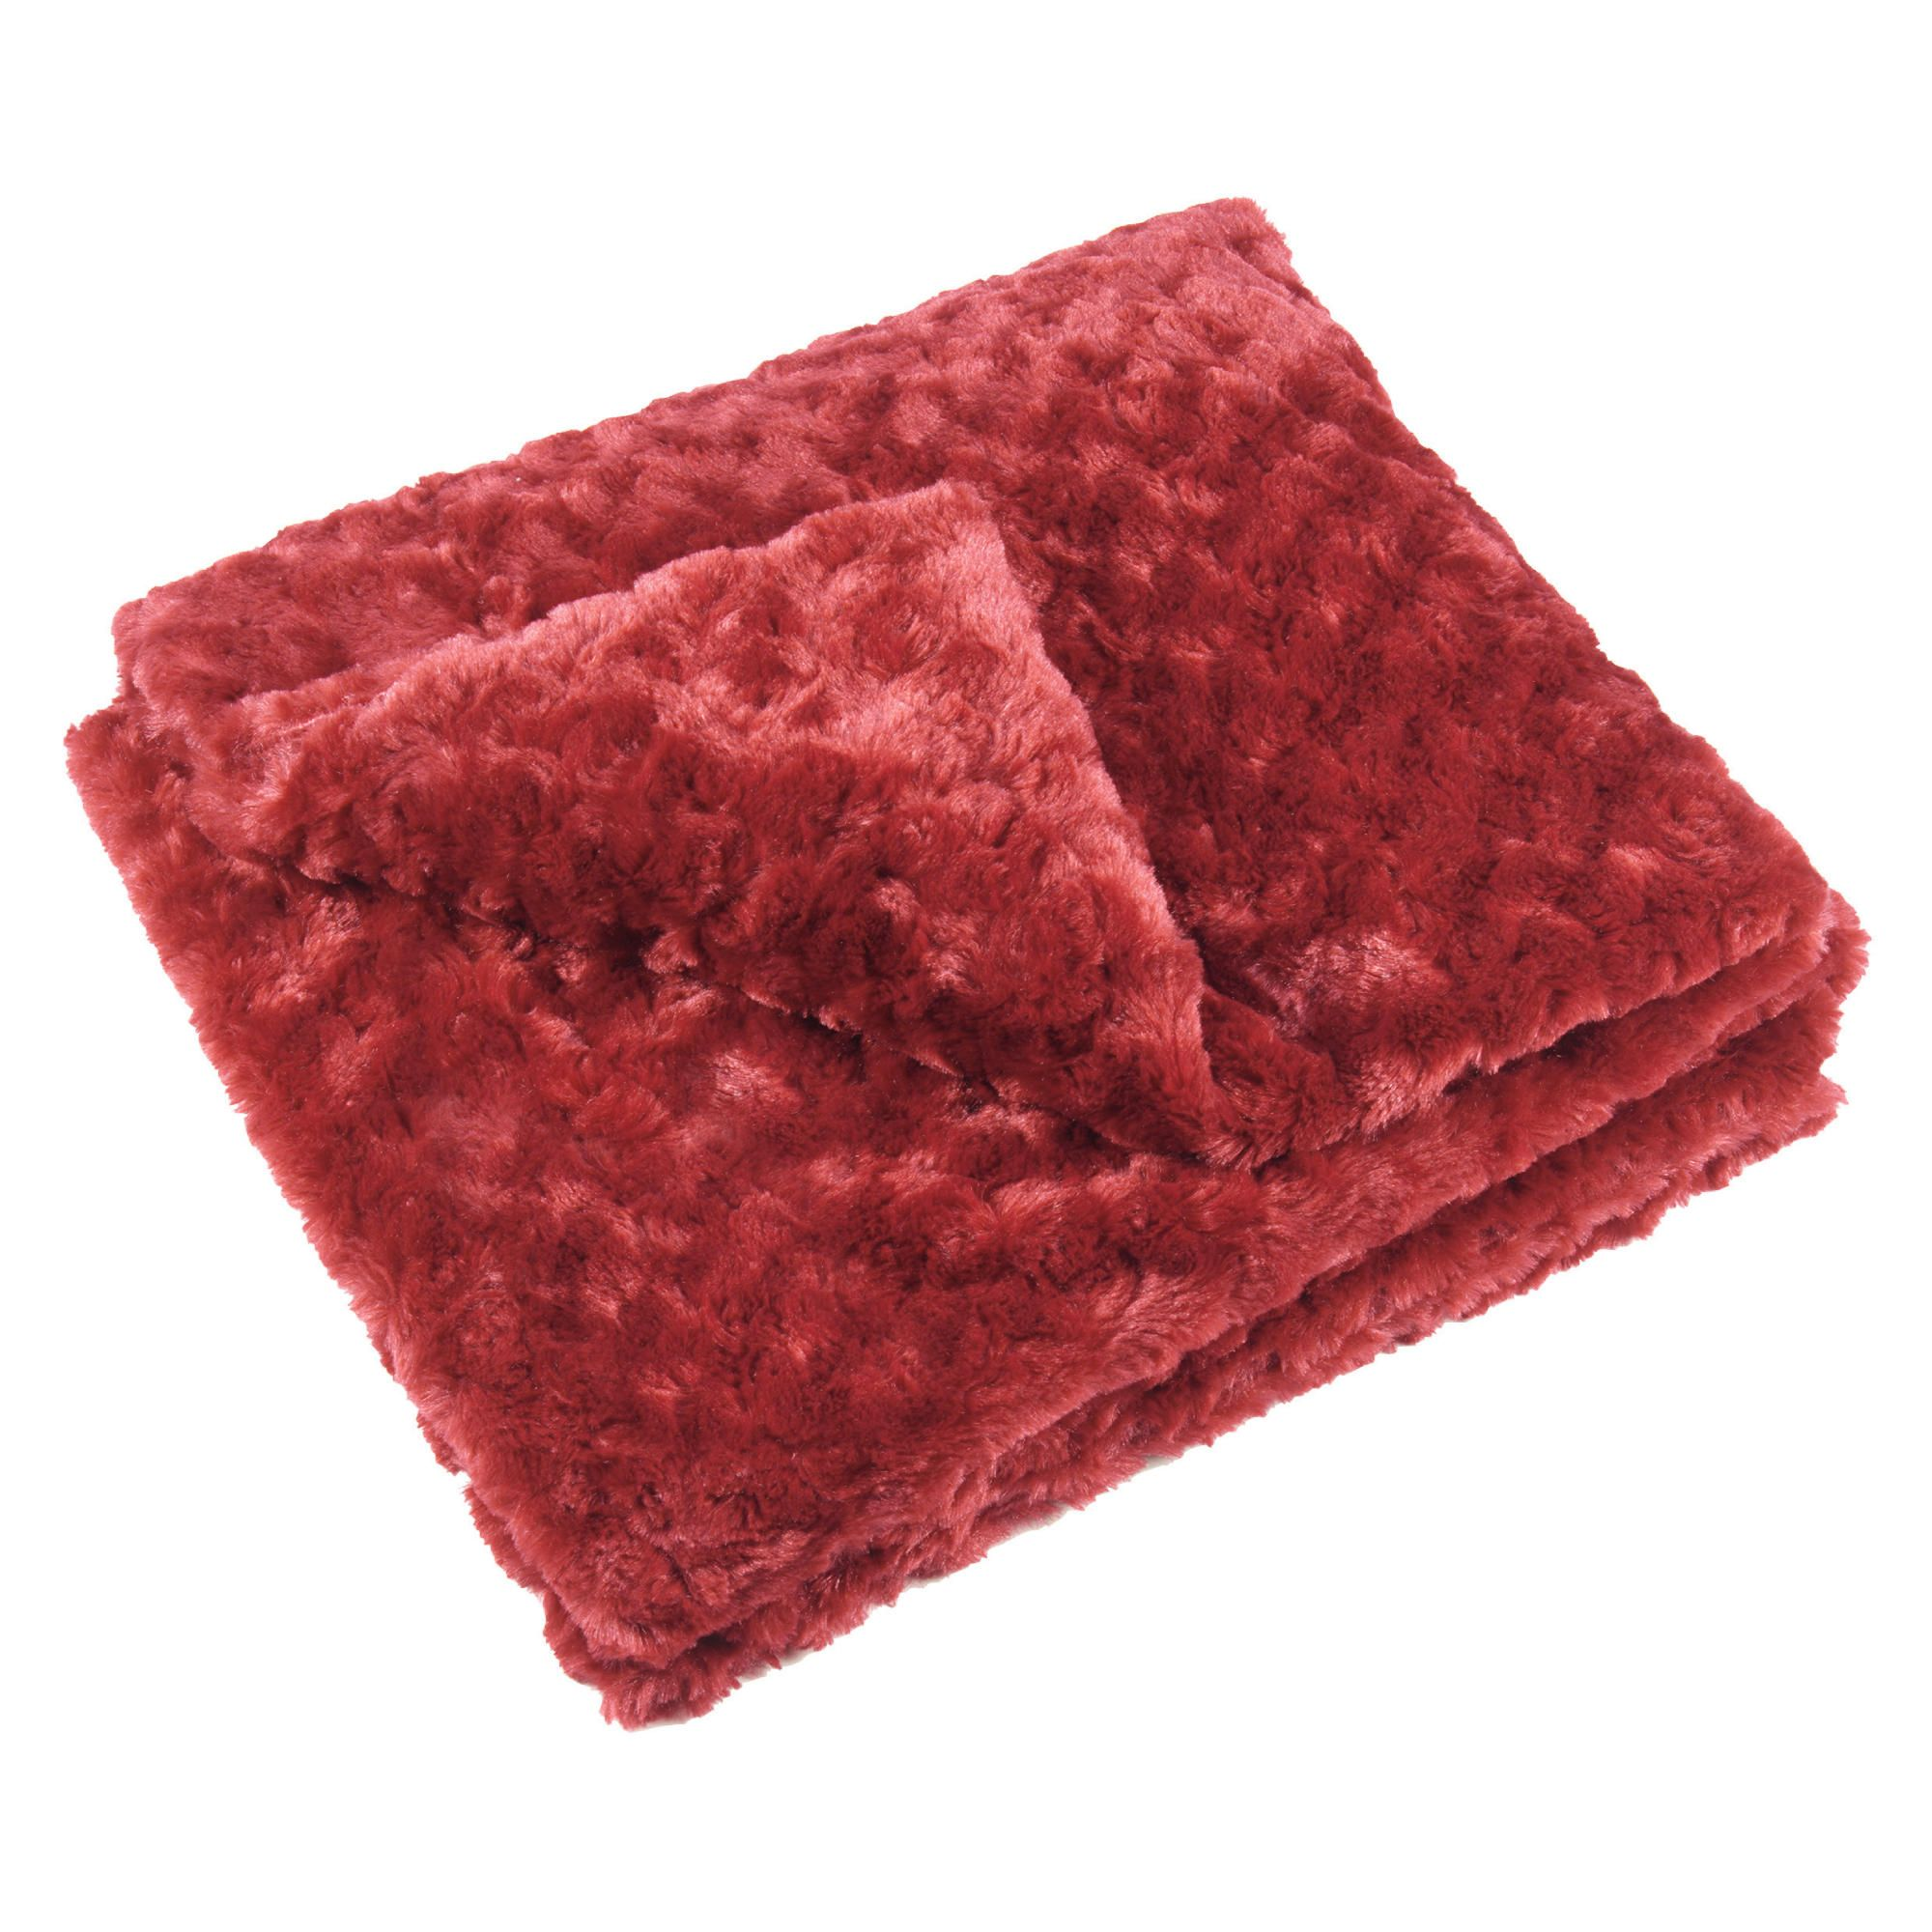 F&F Home Rose Faux Fur Throw 150X170Cm - Berry